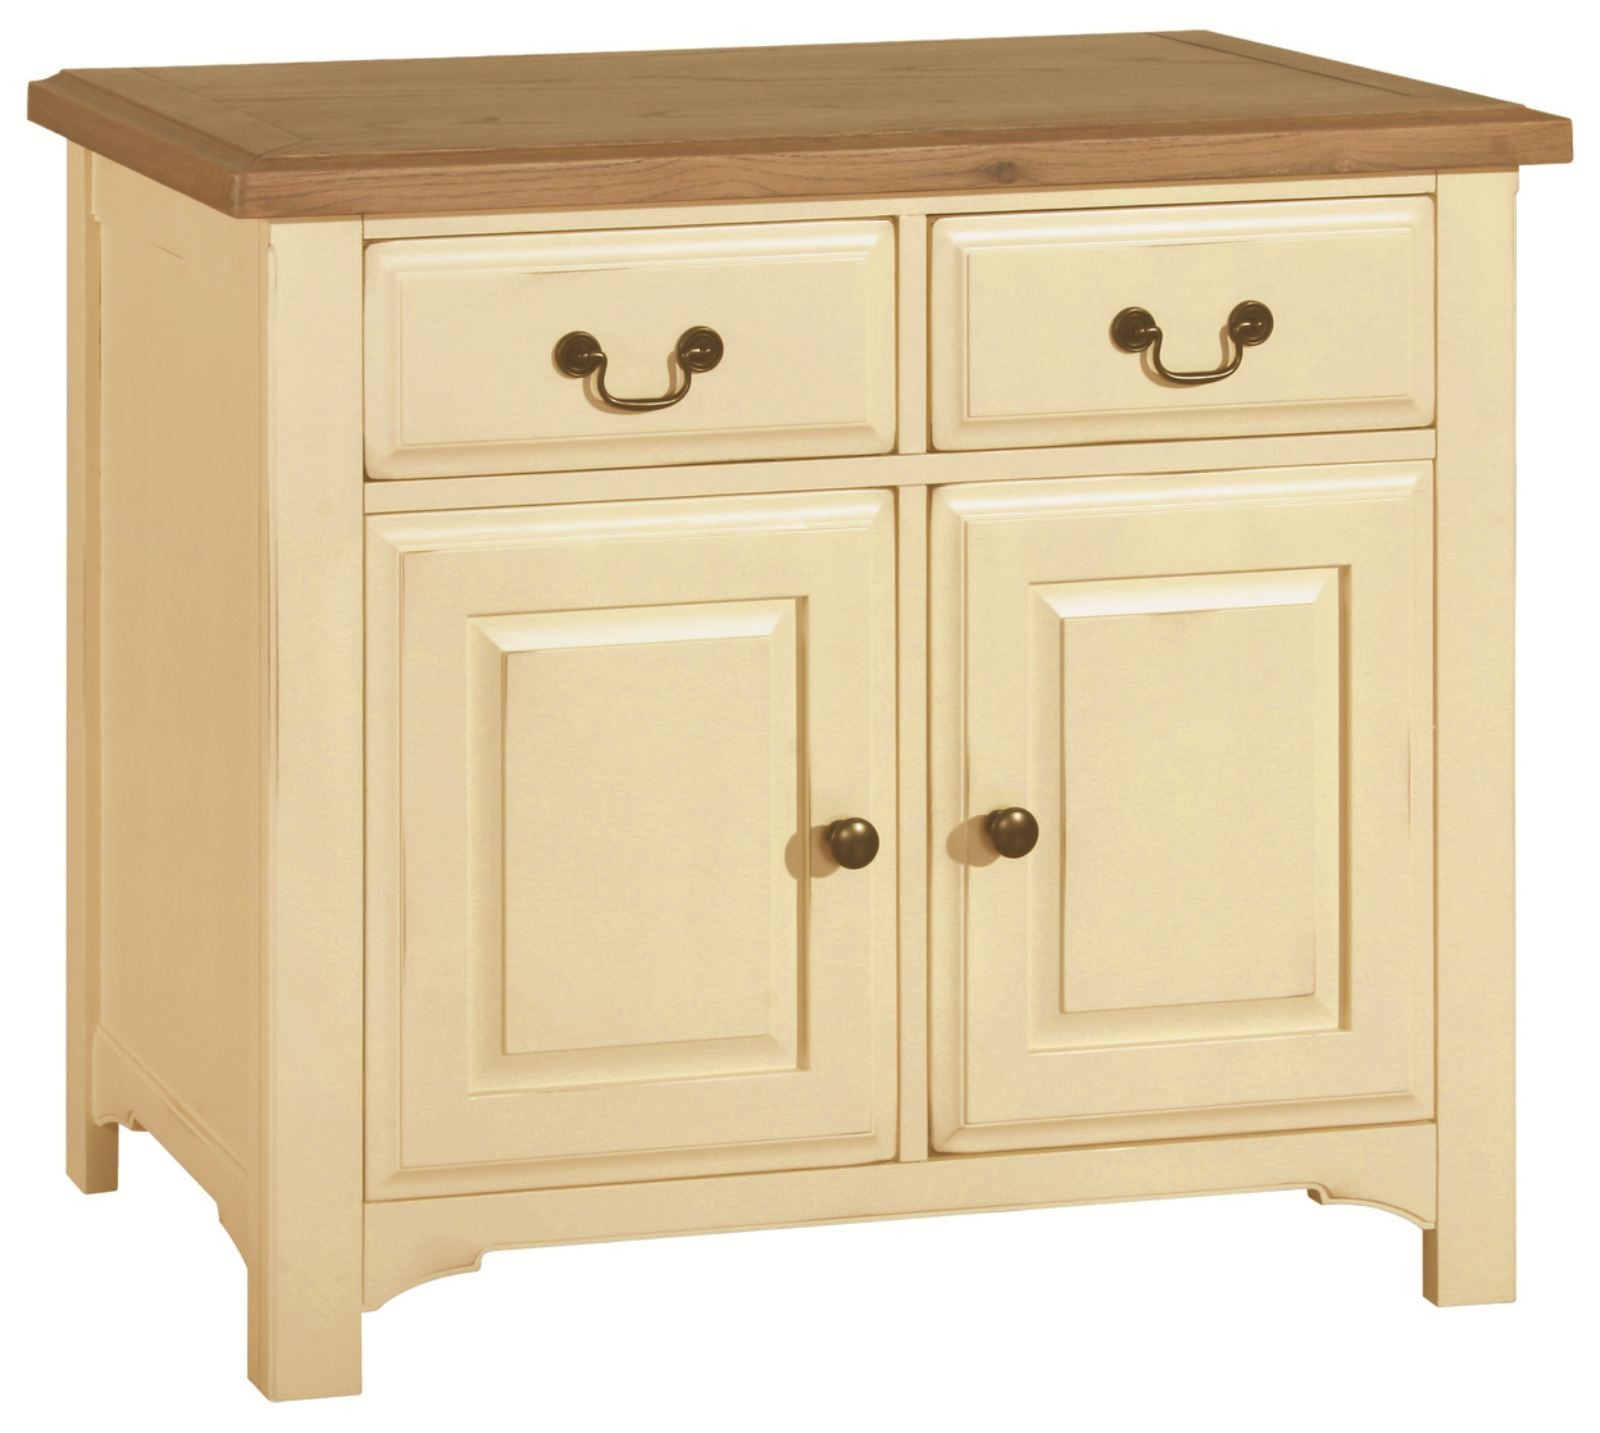 Savannah Country Cream Petite Sideboard